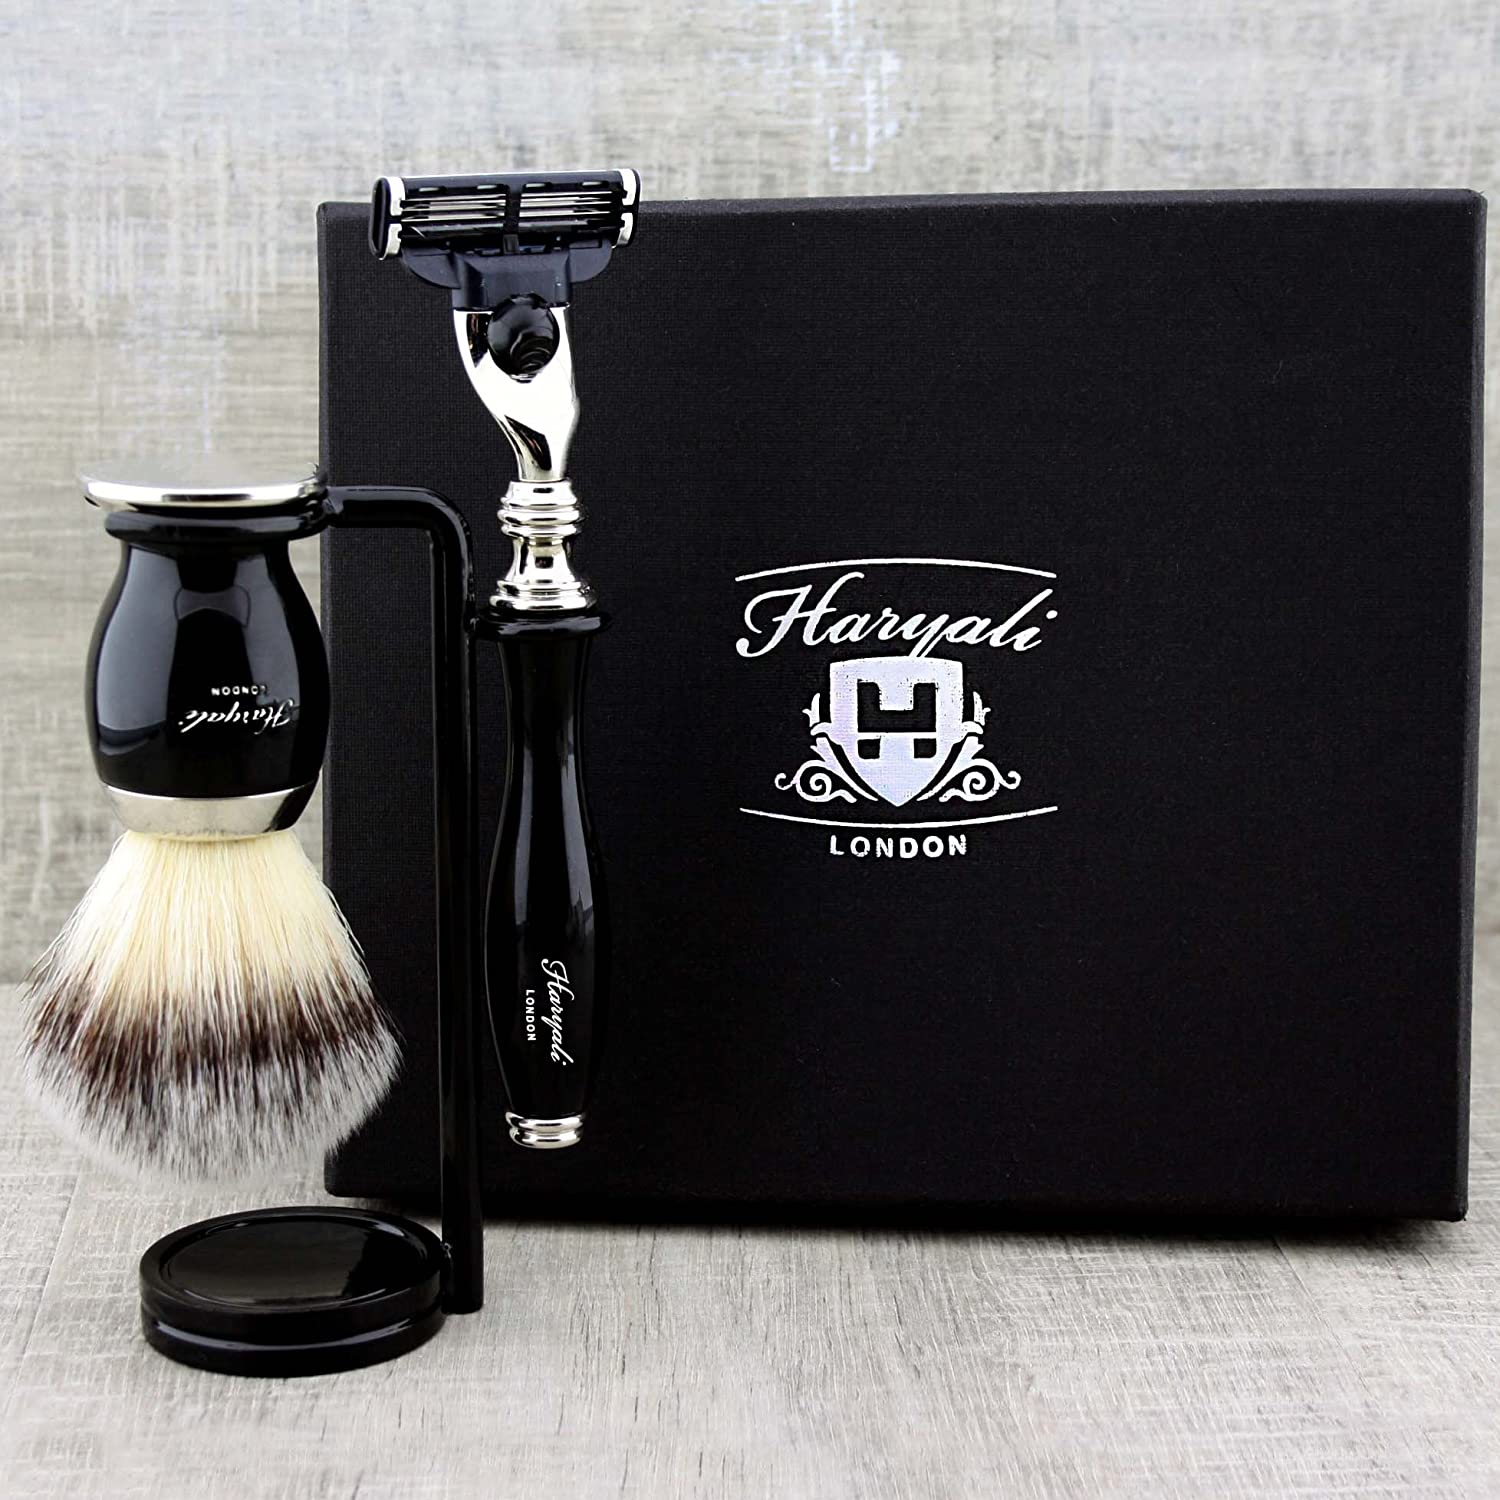 Black Colour 3 Piece Men's Shaving Set. The Set Comes With Badger Looking Synthetic Hair Brush, Gillette Mach 3 Razor & Stand/Holder For Both Brush & Razor. Perfect As a Gift To Him. Haryali London